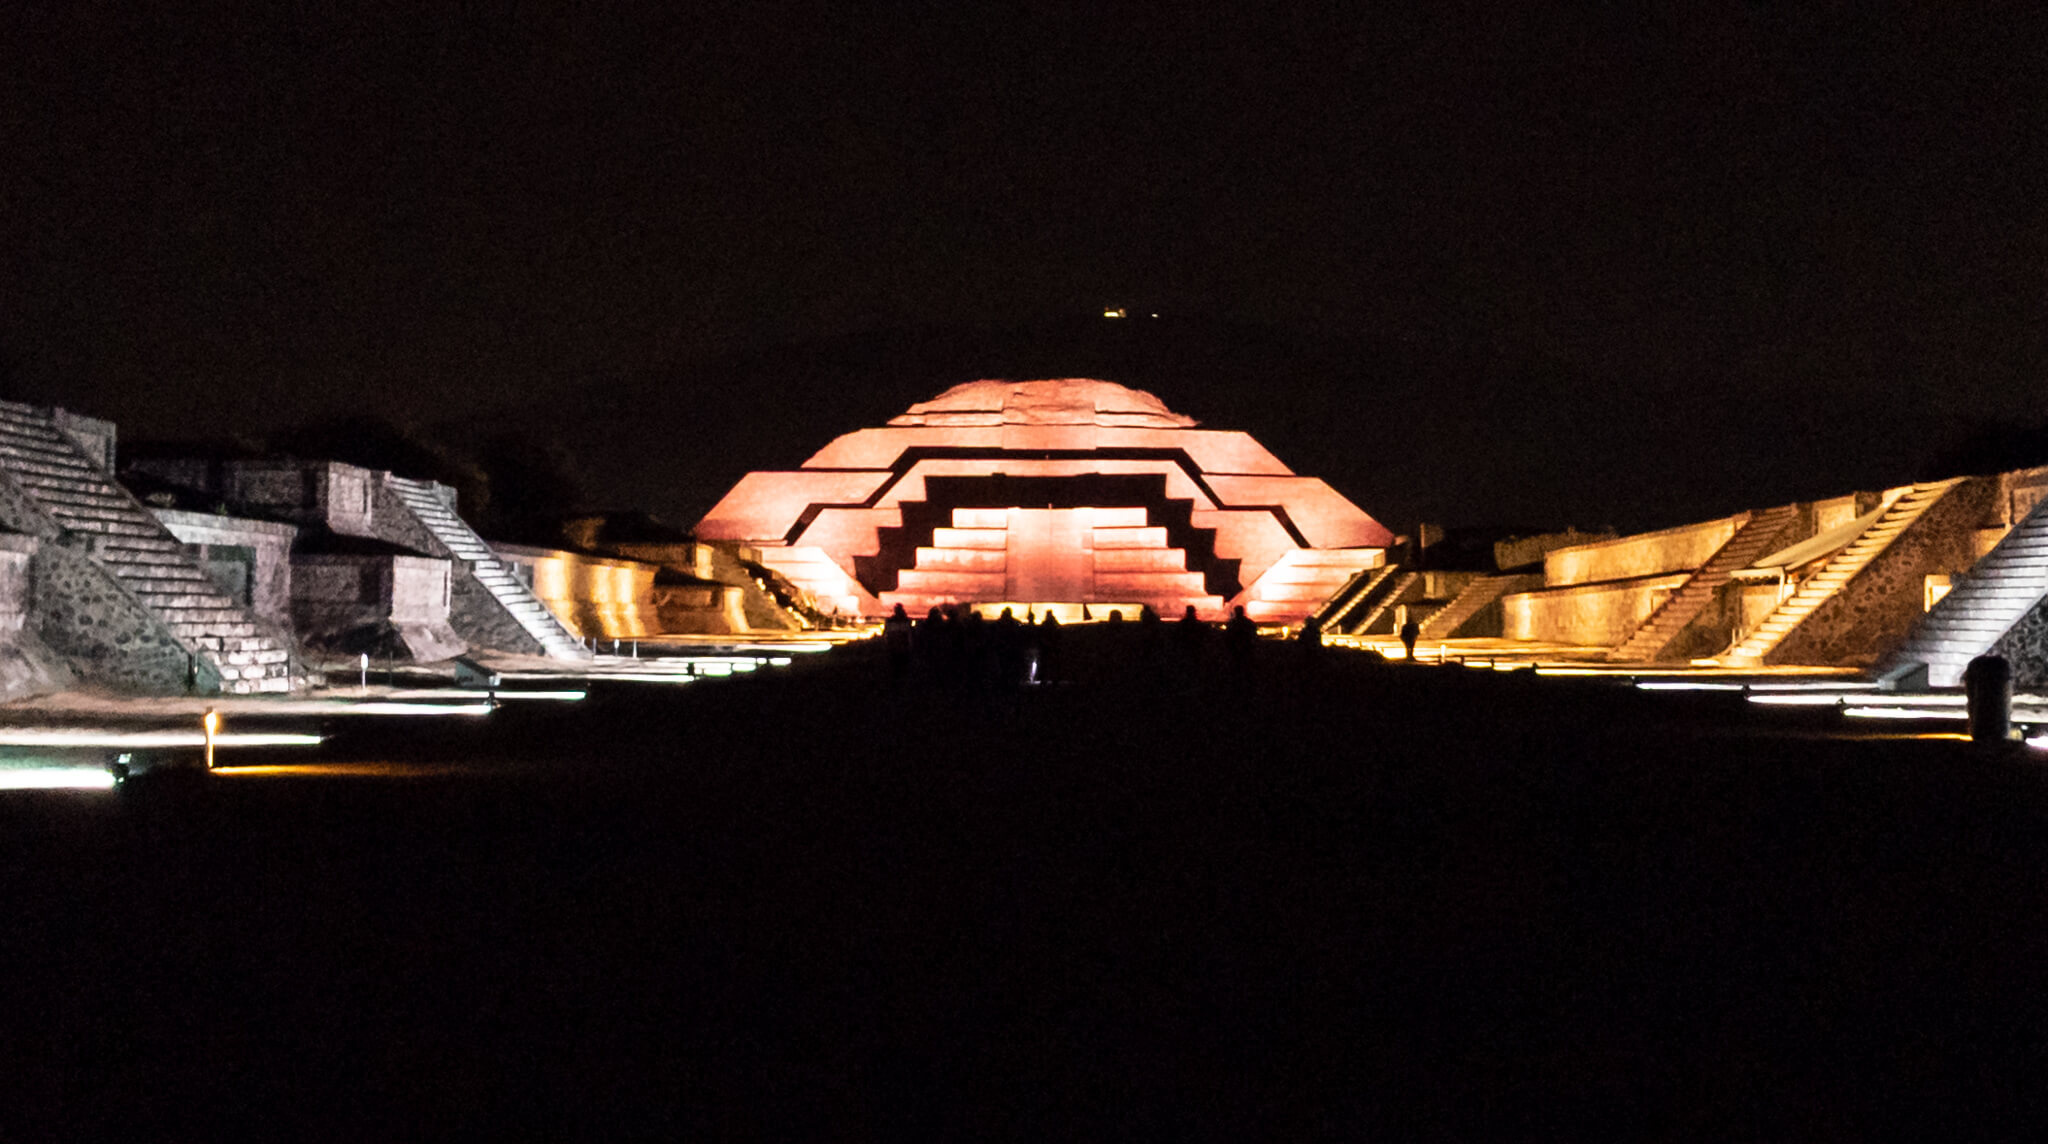 Night Experience Teotihuacan Pyramid of the Moon lit at night